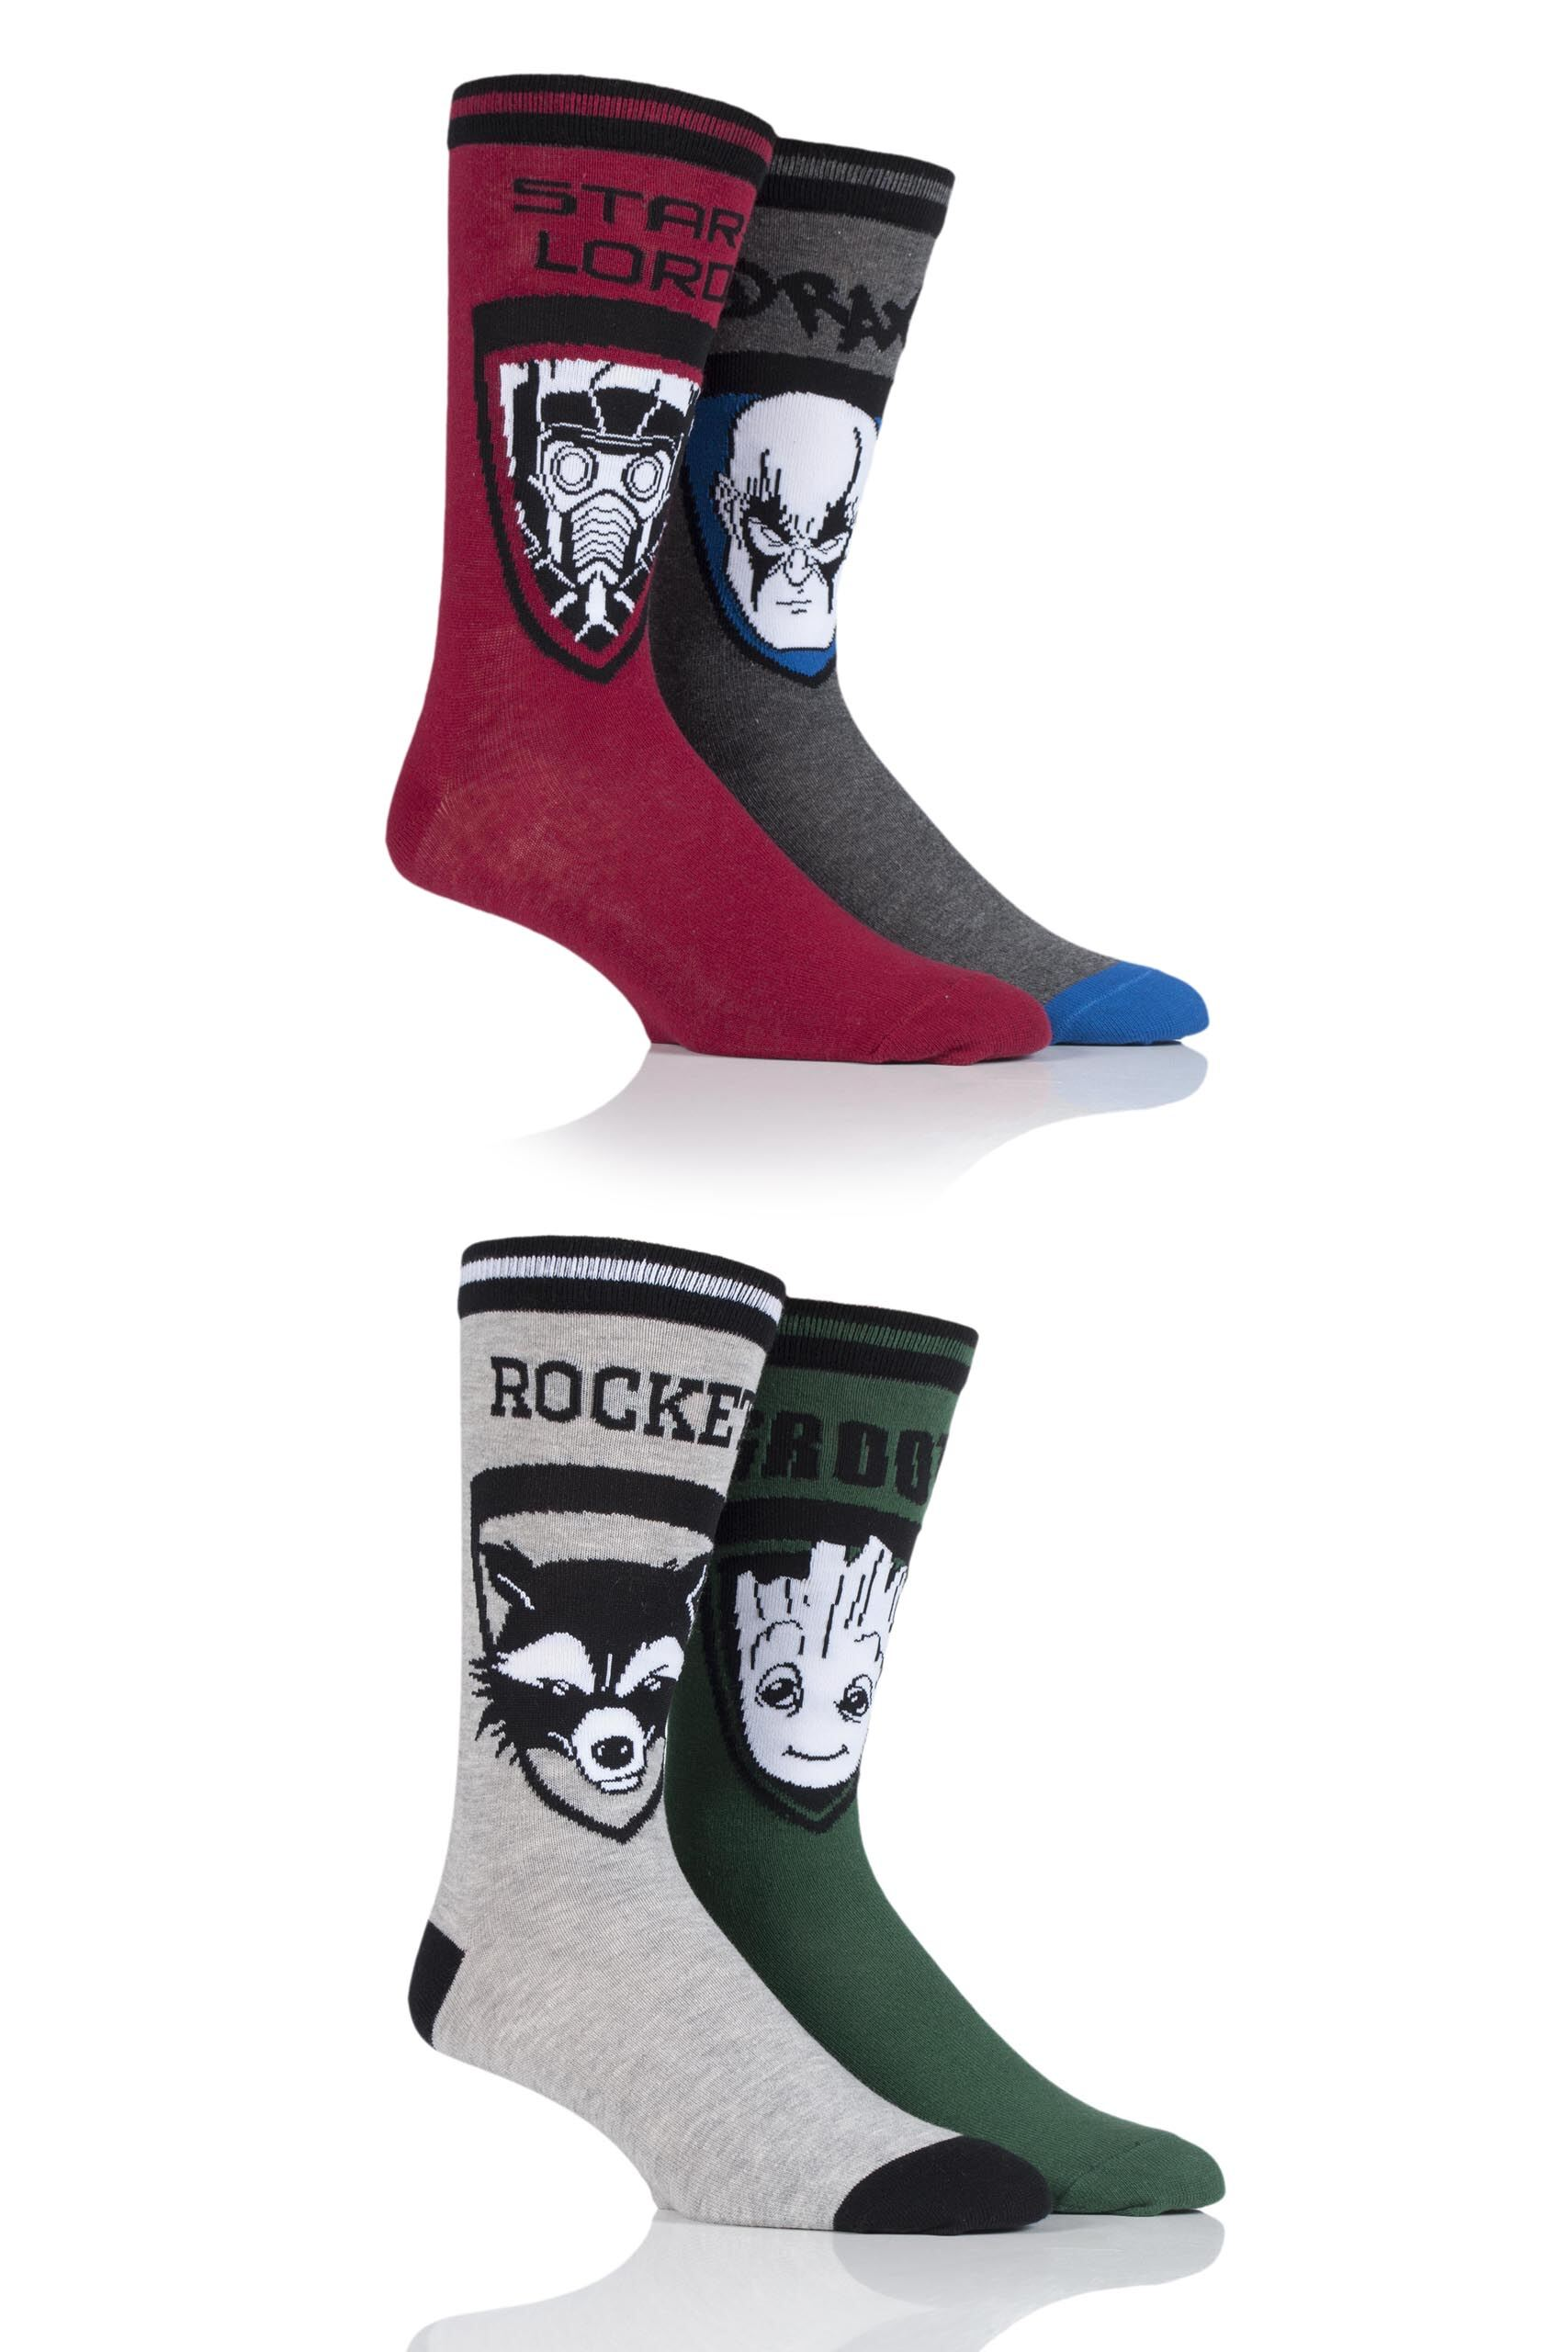 4 Pair Assorted Marvel Guardians of the Galaxy Groot, Rocket, Star-Lord and Drax Cotton Socks Men's 6-11 Mens - Film & TV Characters